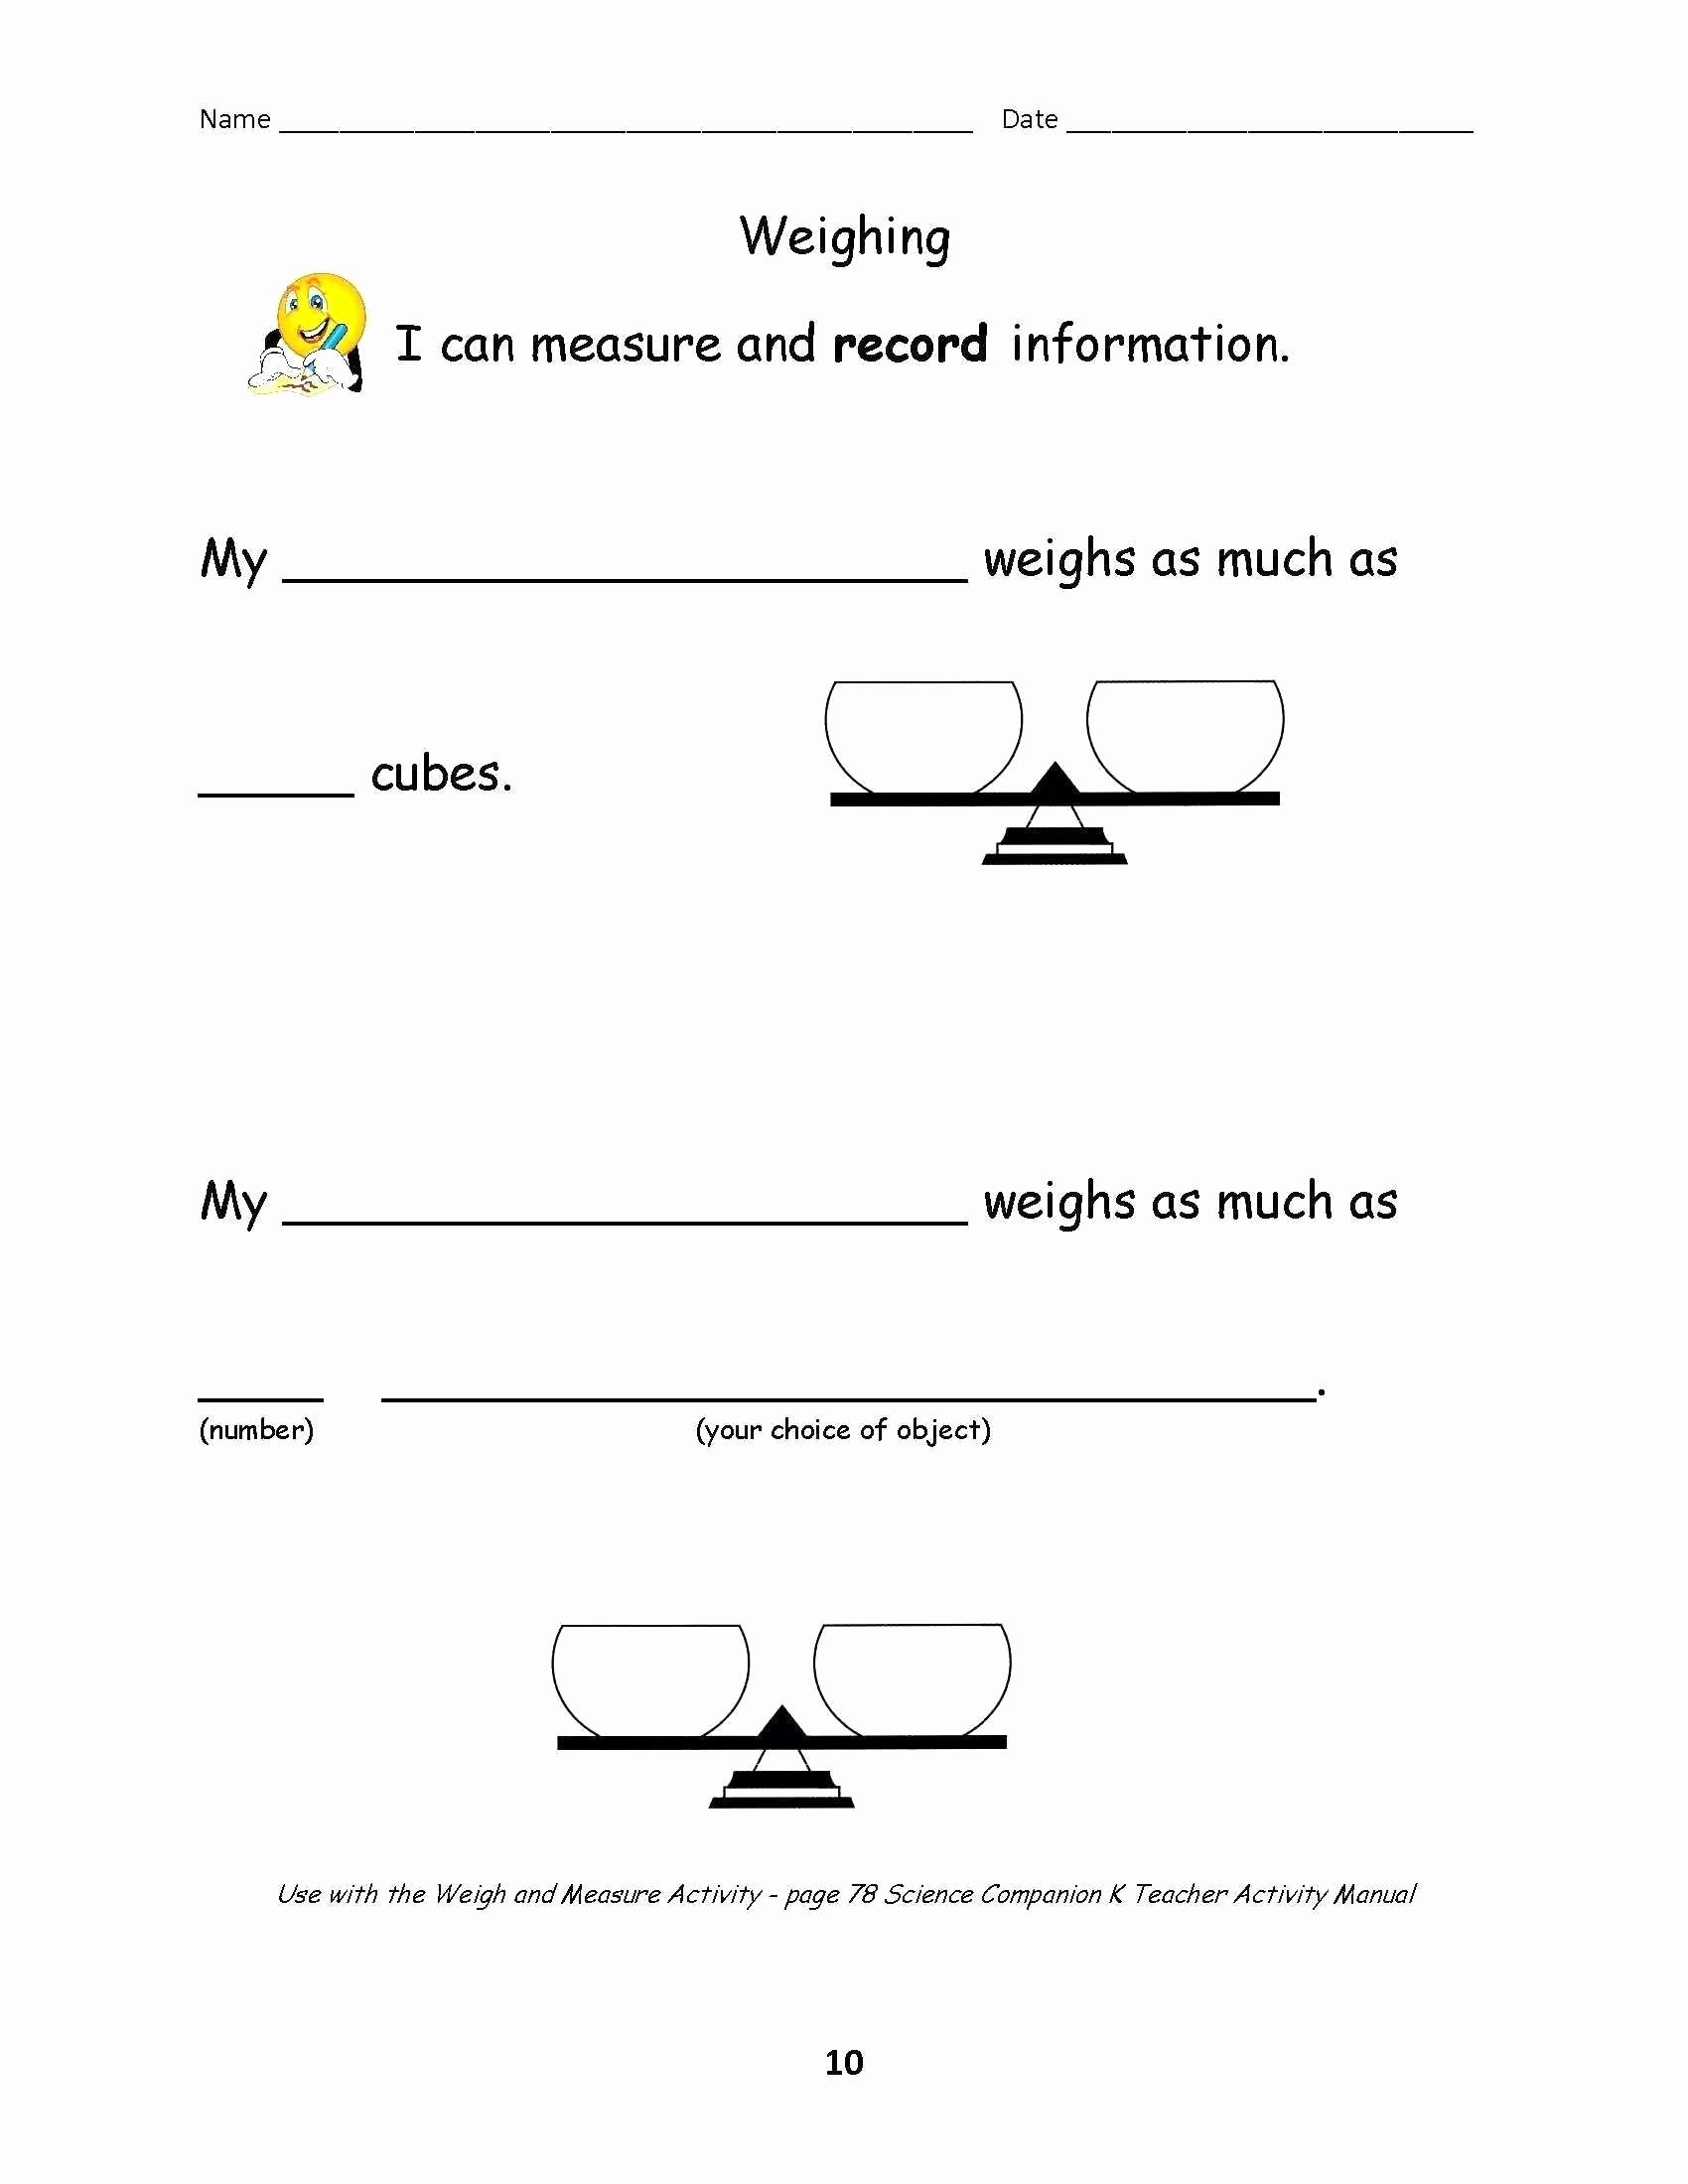 Ratifying the Constitution Worksheet Answers Fresh Constitution Notes Worksheet Answers